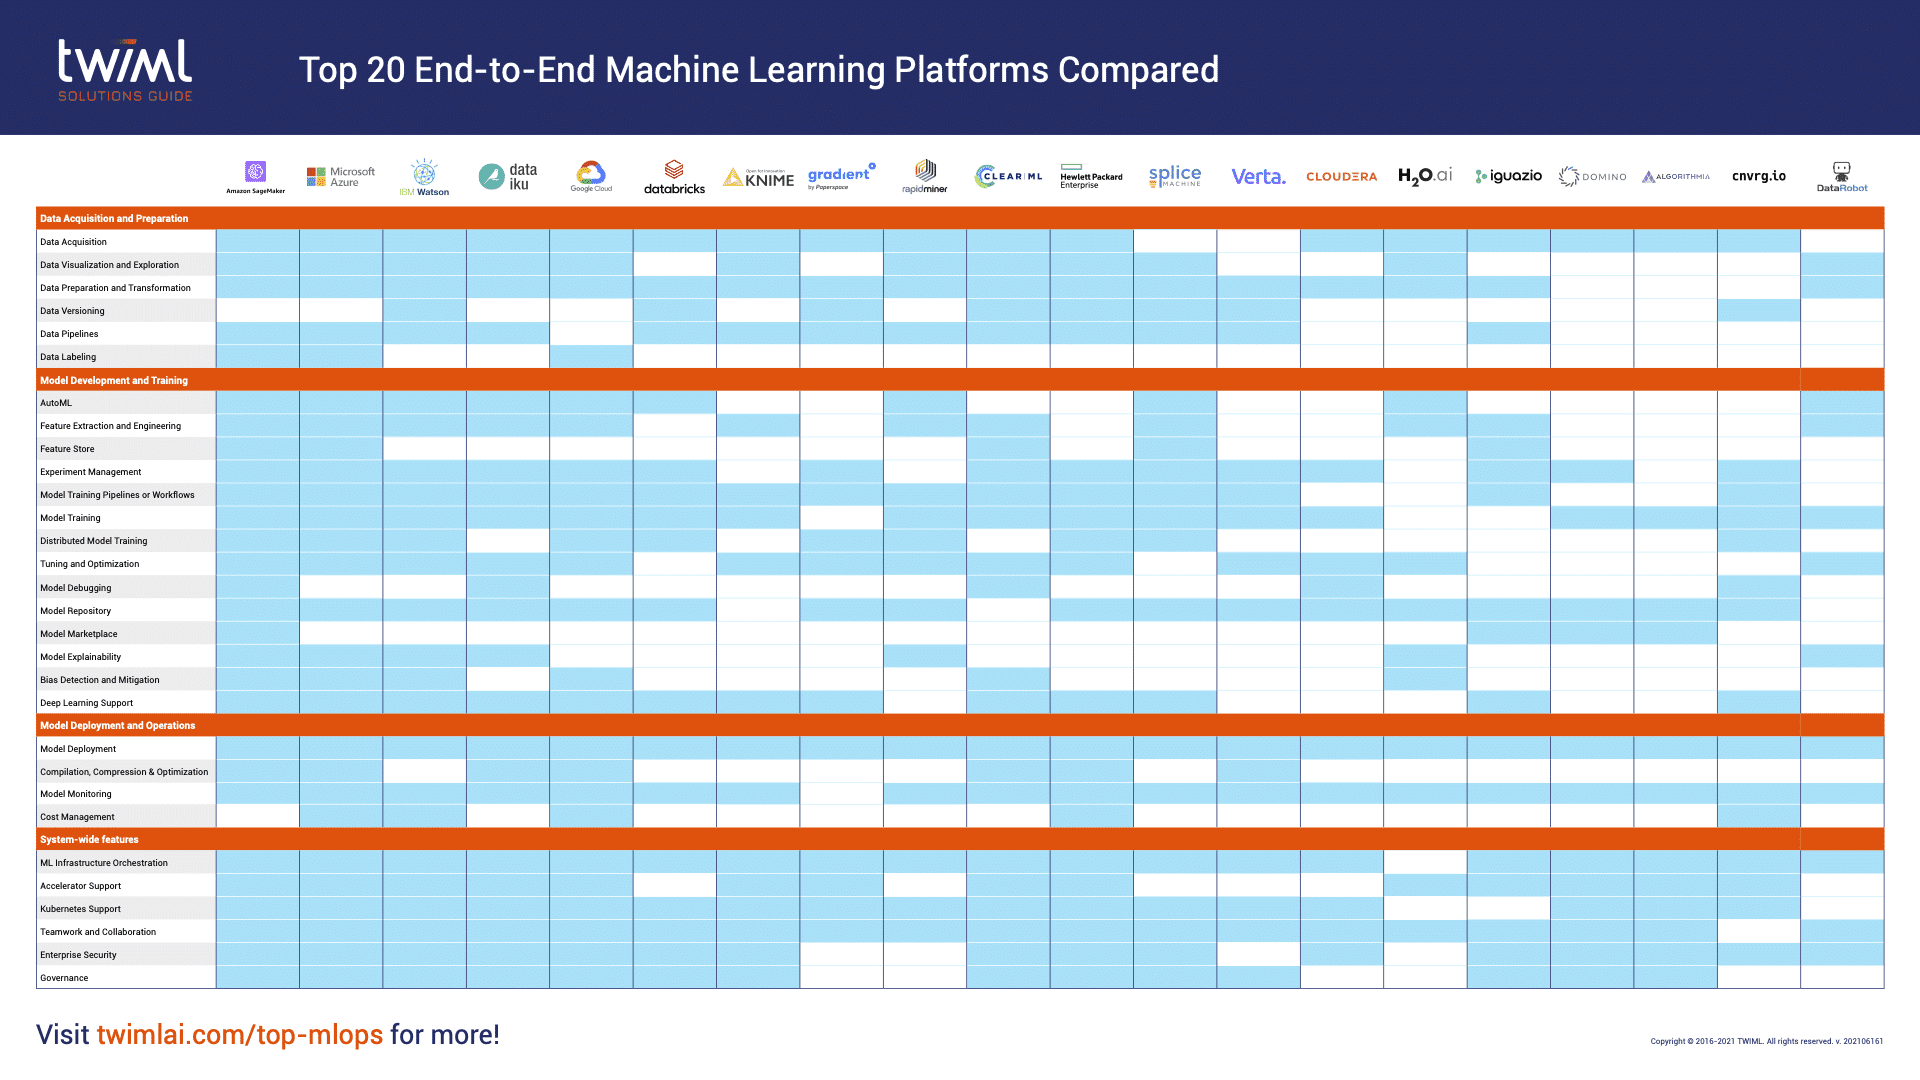 an infographic comparing AI tools